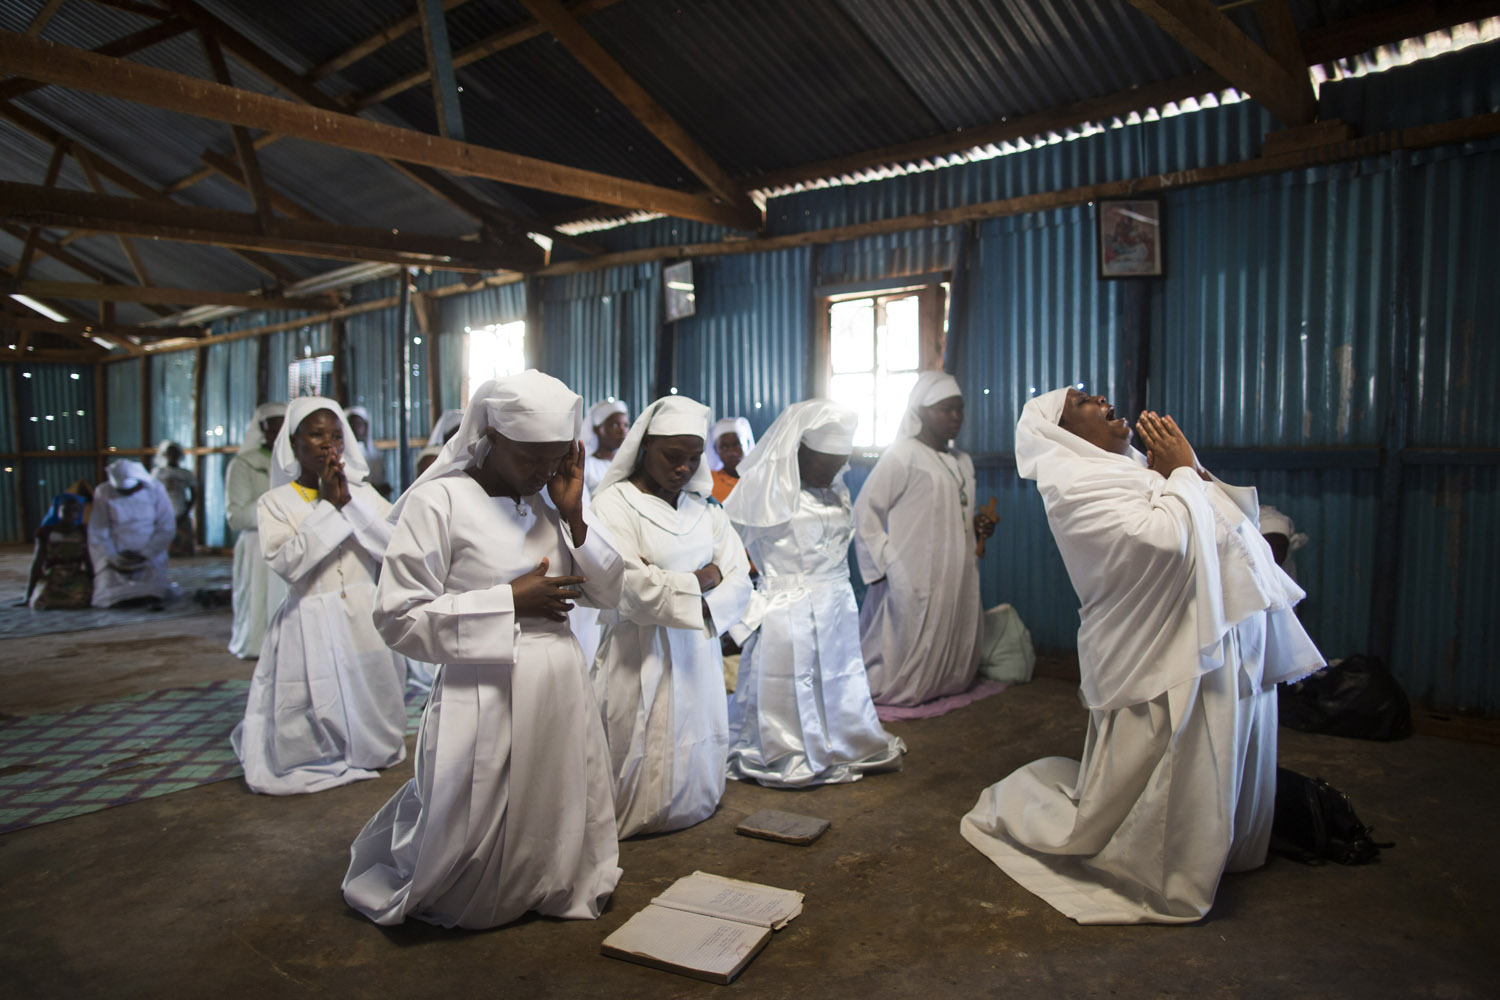 Sept, 29, 2013. Kenyans pray as they hold a church service for the victims of the Westgate Shopping Center attack in Nairobi, Kenya.